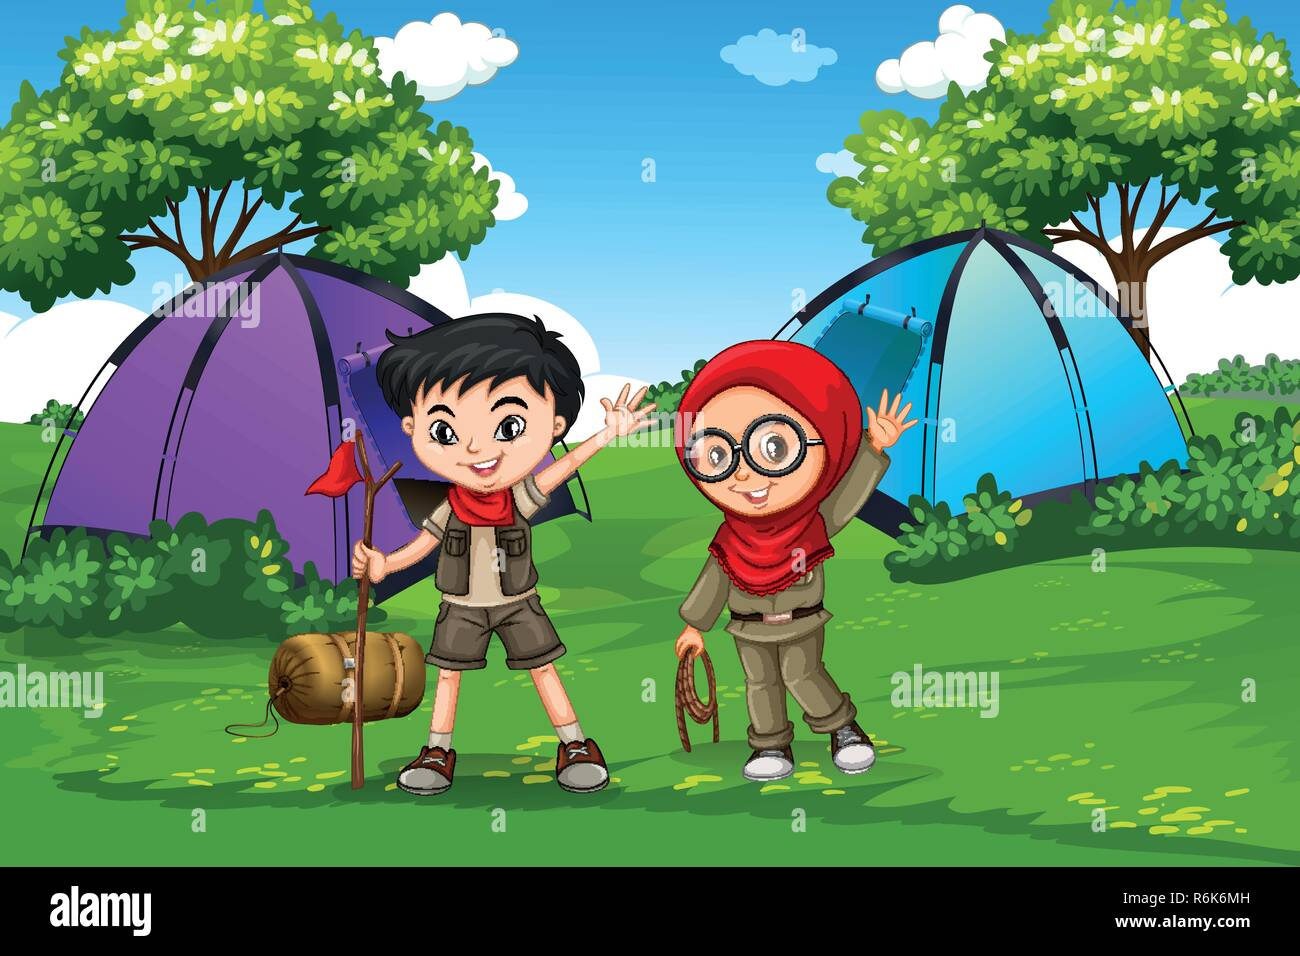 Boy and girl scout camping in forest illustration - Stock Vector